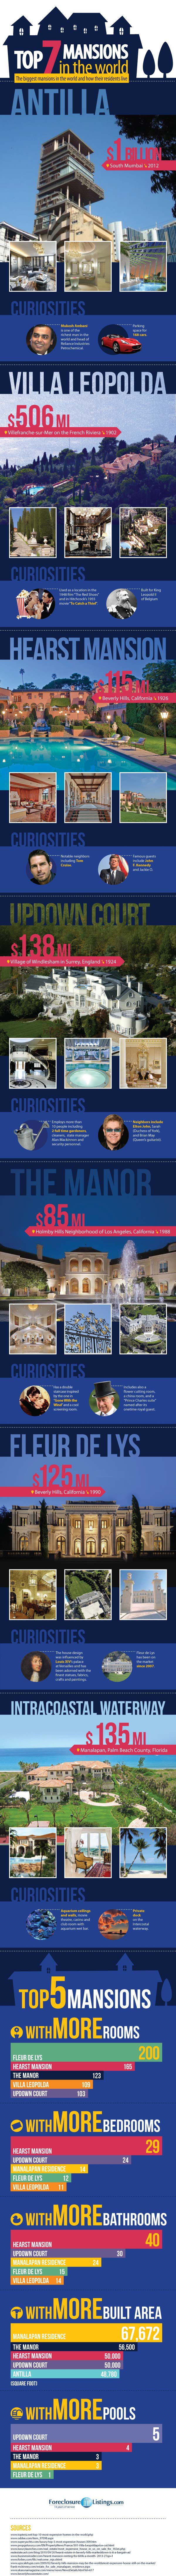 Breathtaking Mansions-Infographic